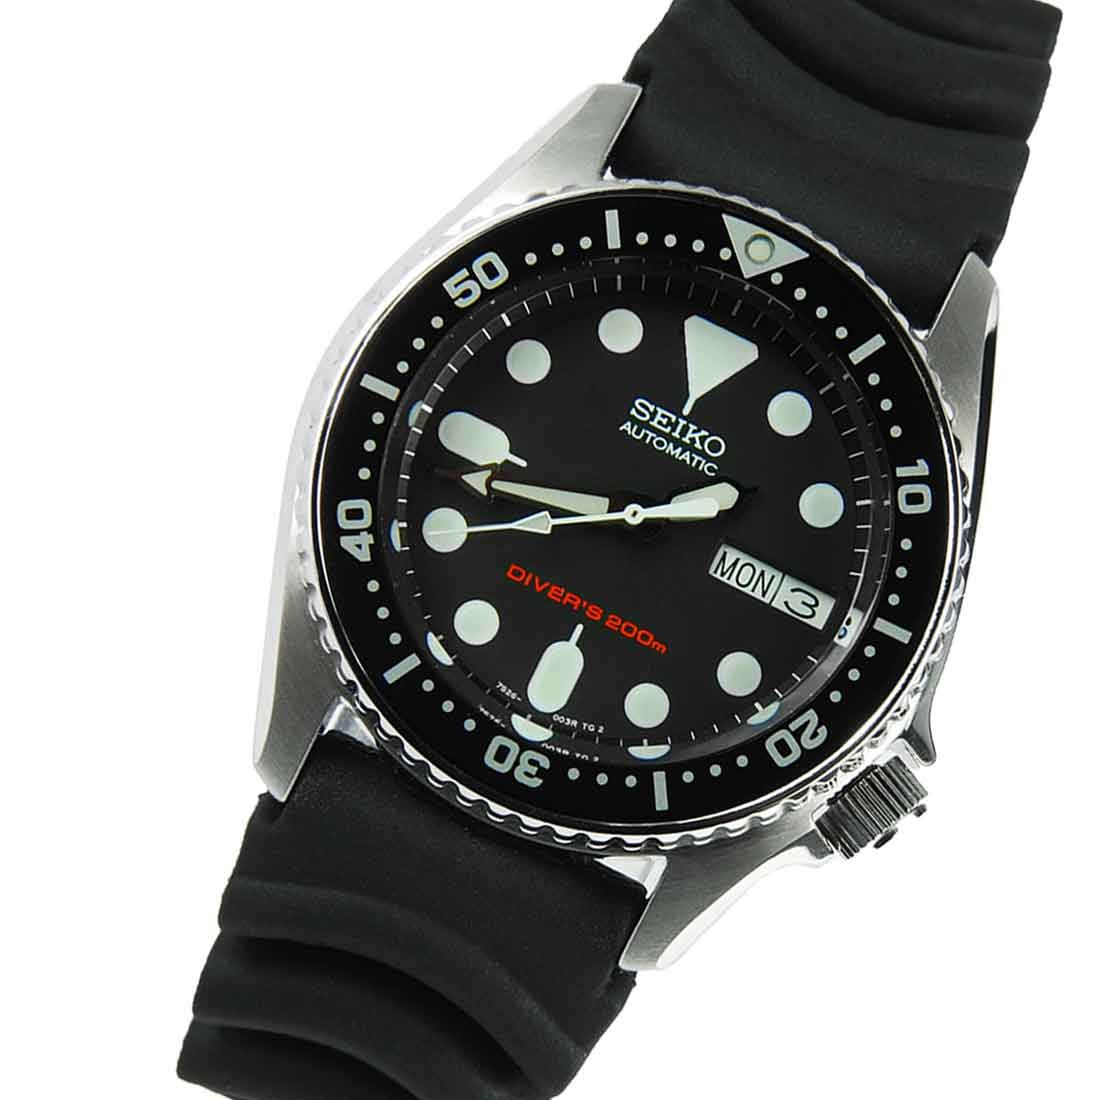 Seiko men 39 s automatic watch skx013 review the watch blog - Best seiko dive watch ...